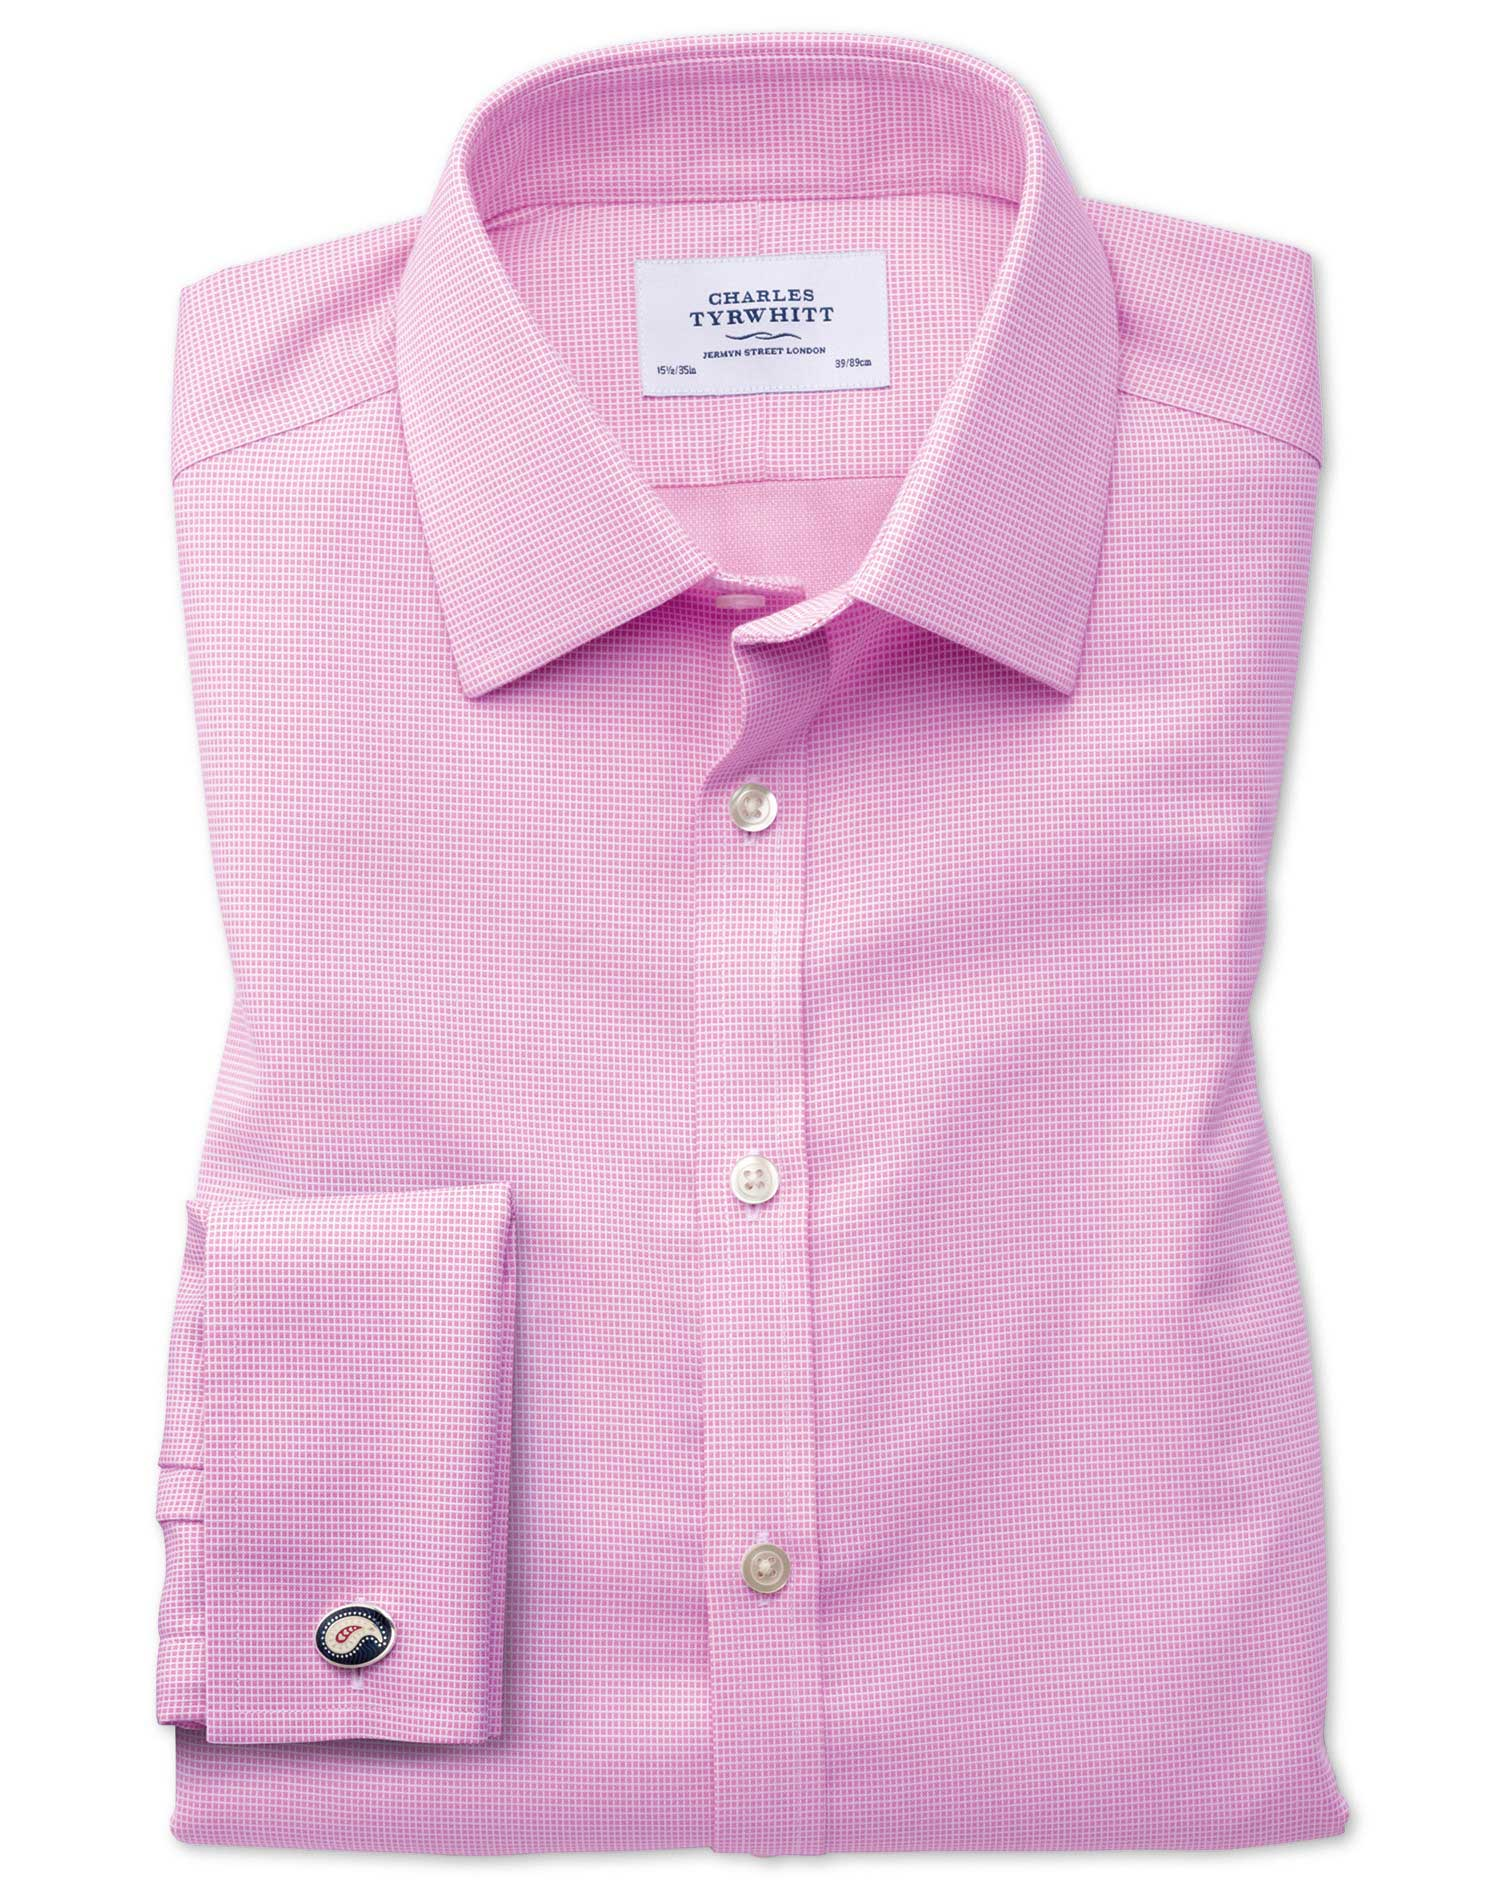 Slim Fit Non-Iron Square Weave Pink Cotton Formal Shirt Single Cuff Size 14.5/32 by Charles Tyrwhitt